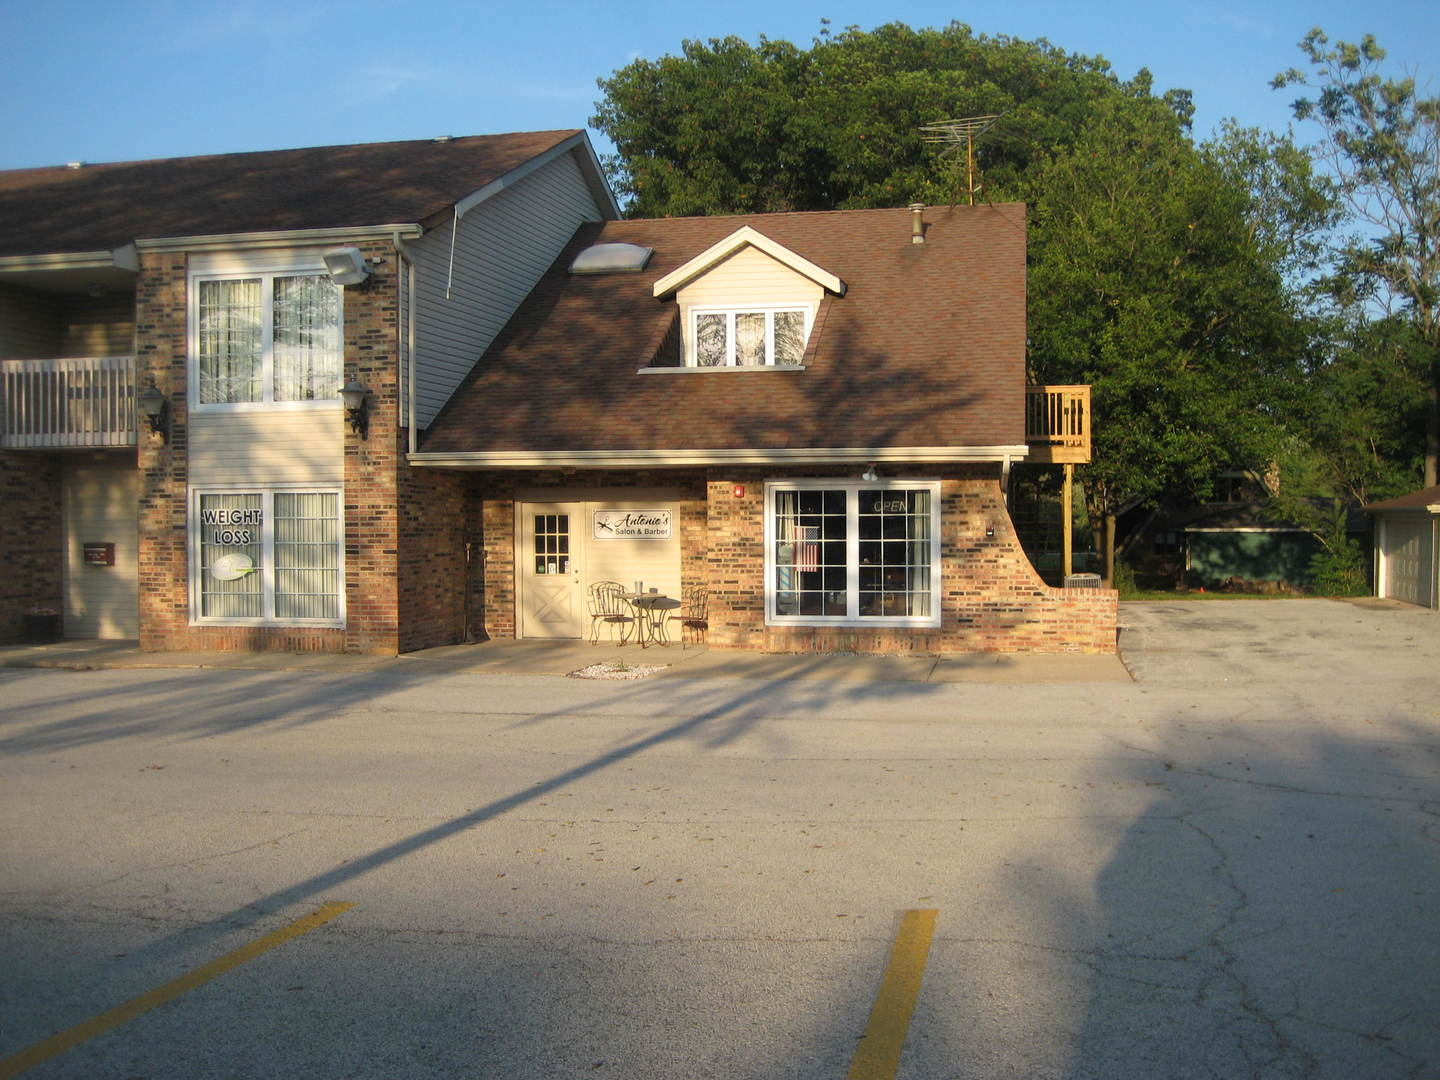 Latest listing business properties for rent or buy on Chicago, Illinois